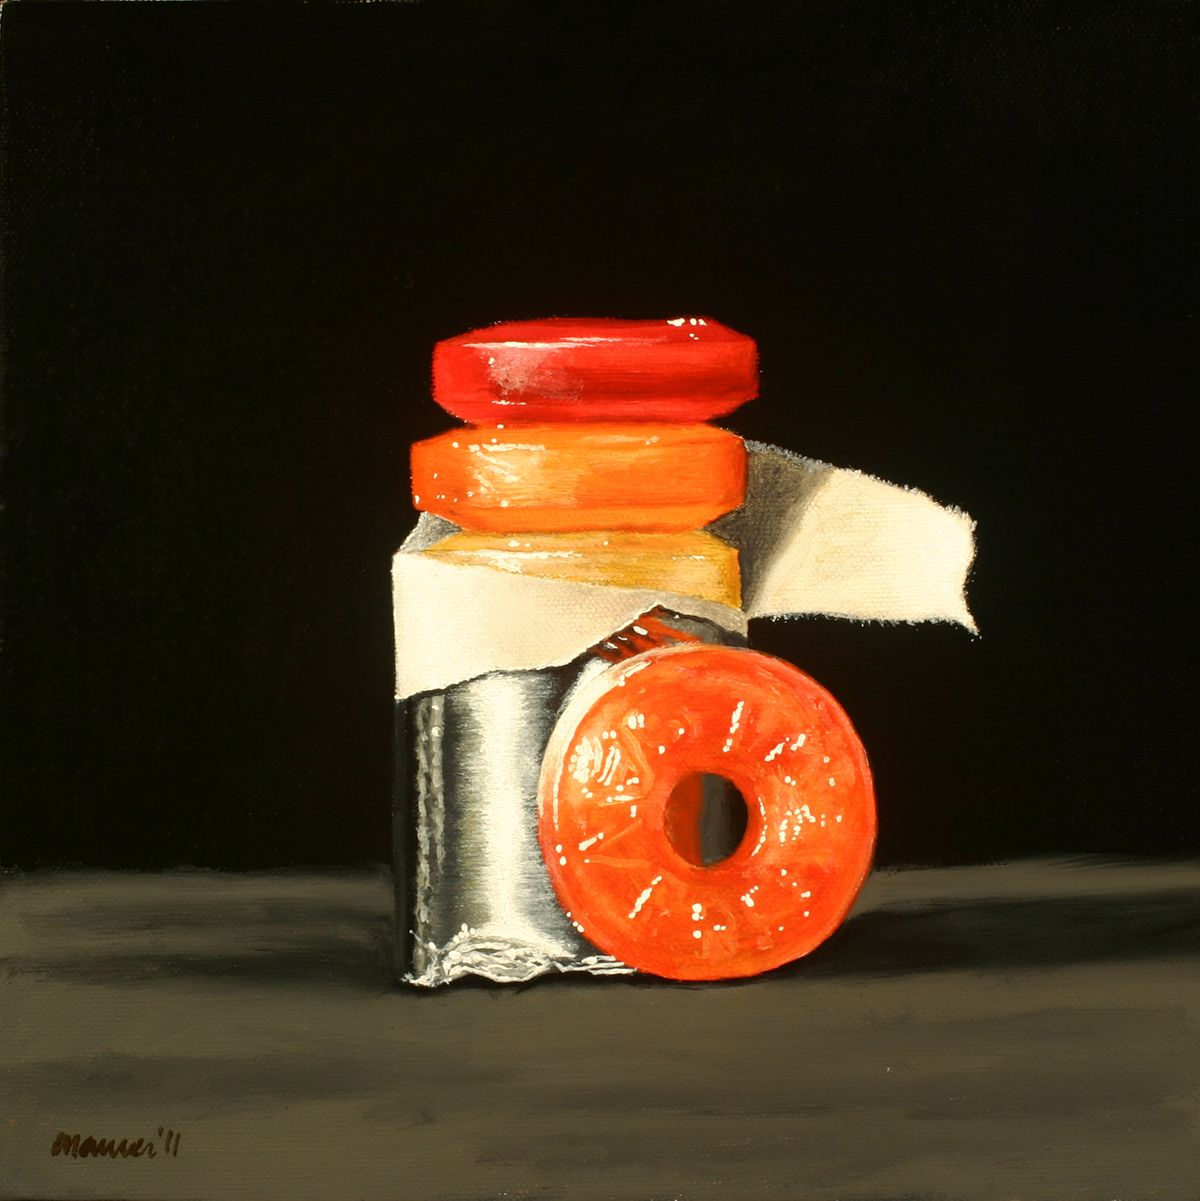 famous still life paintings - Google Search | Year 8 Sweets Things ...